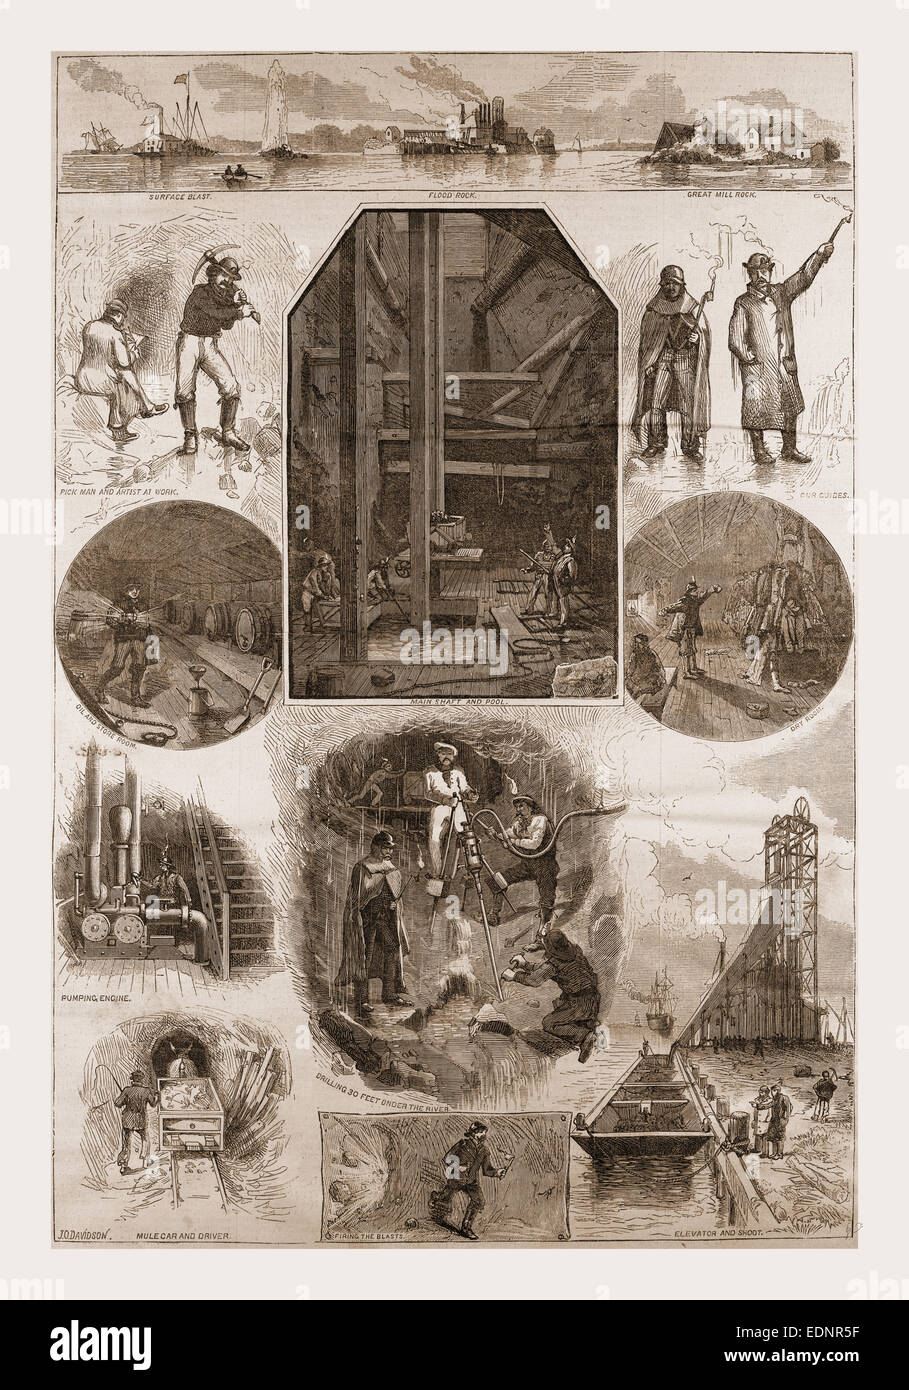 THE EXCAVATIONS UNDER FLOOD ROCK, HELL GATE, 1880, USA, America, 19th century engraving - Stock Image